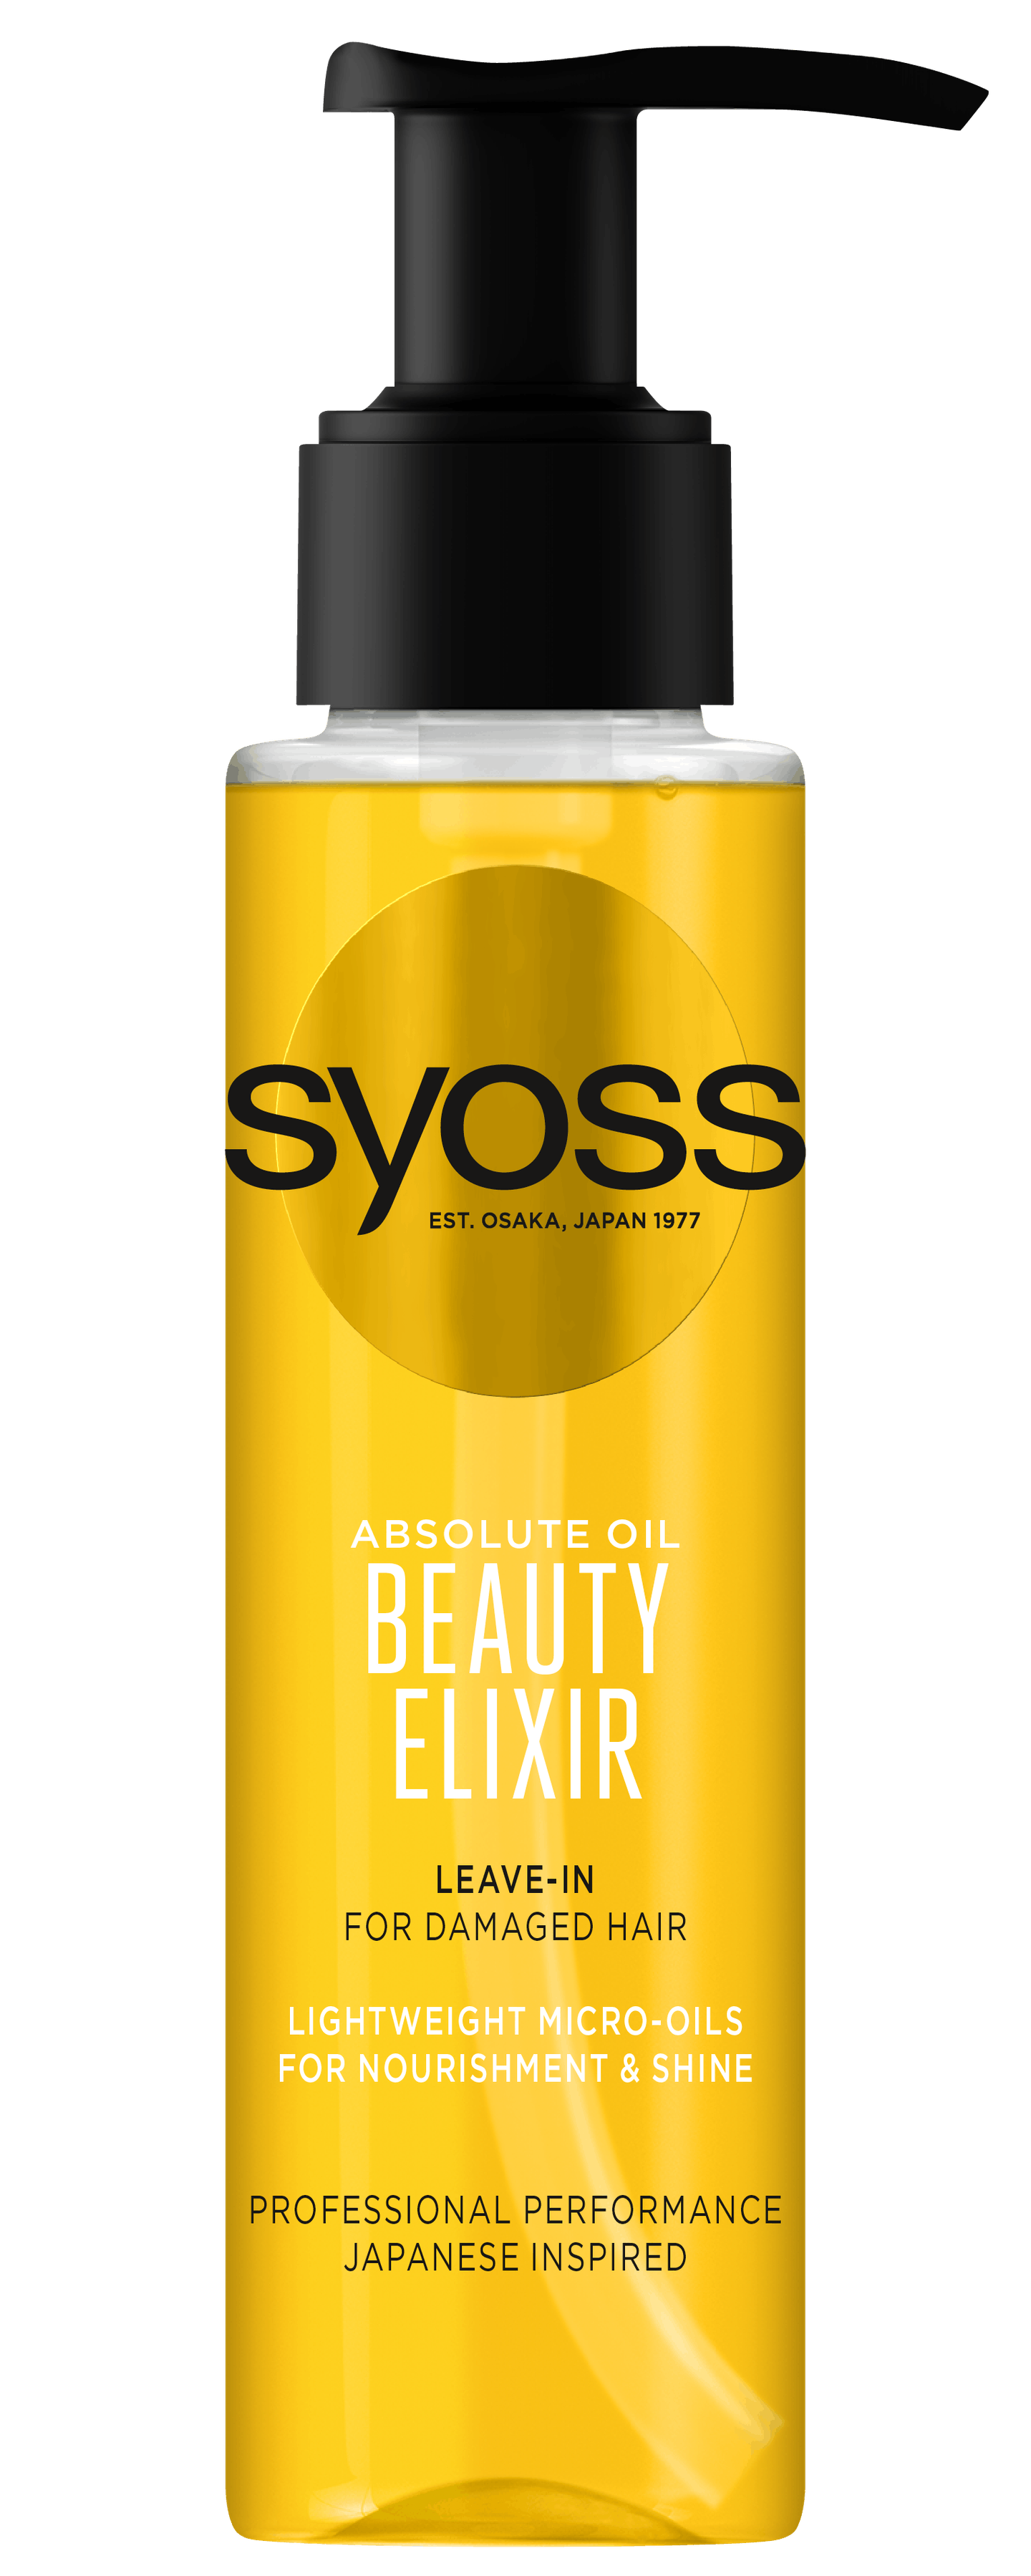 Absolute Oil Beauty Elixir